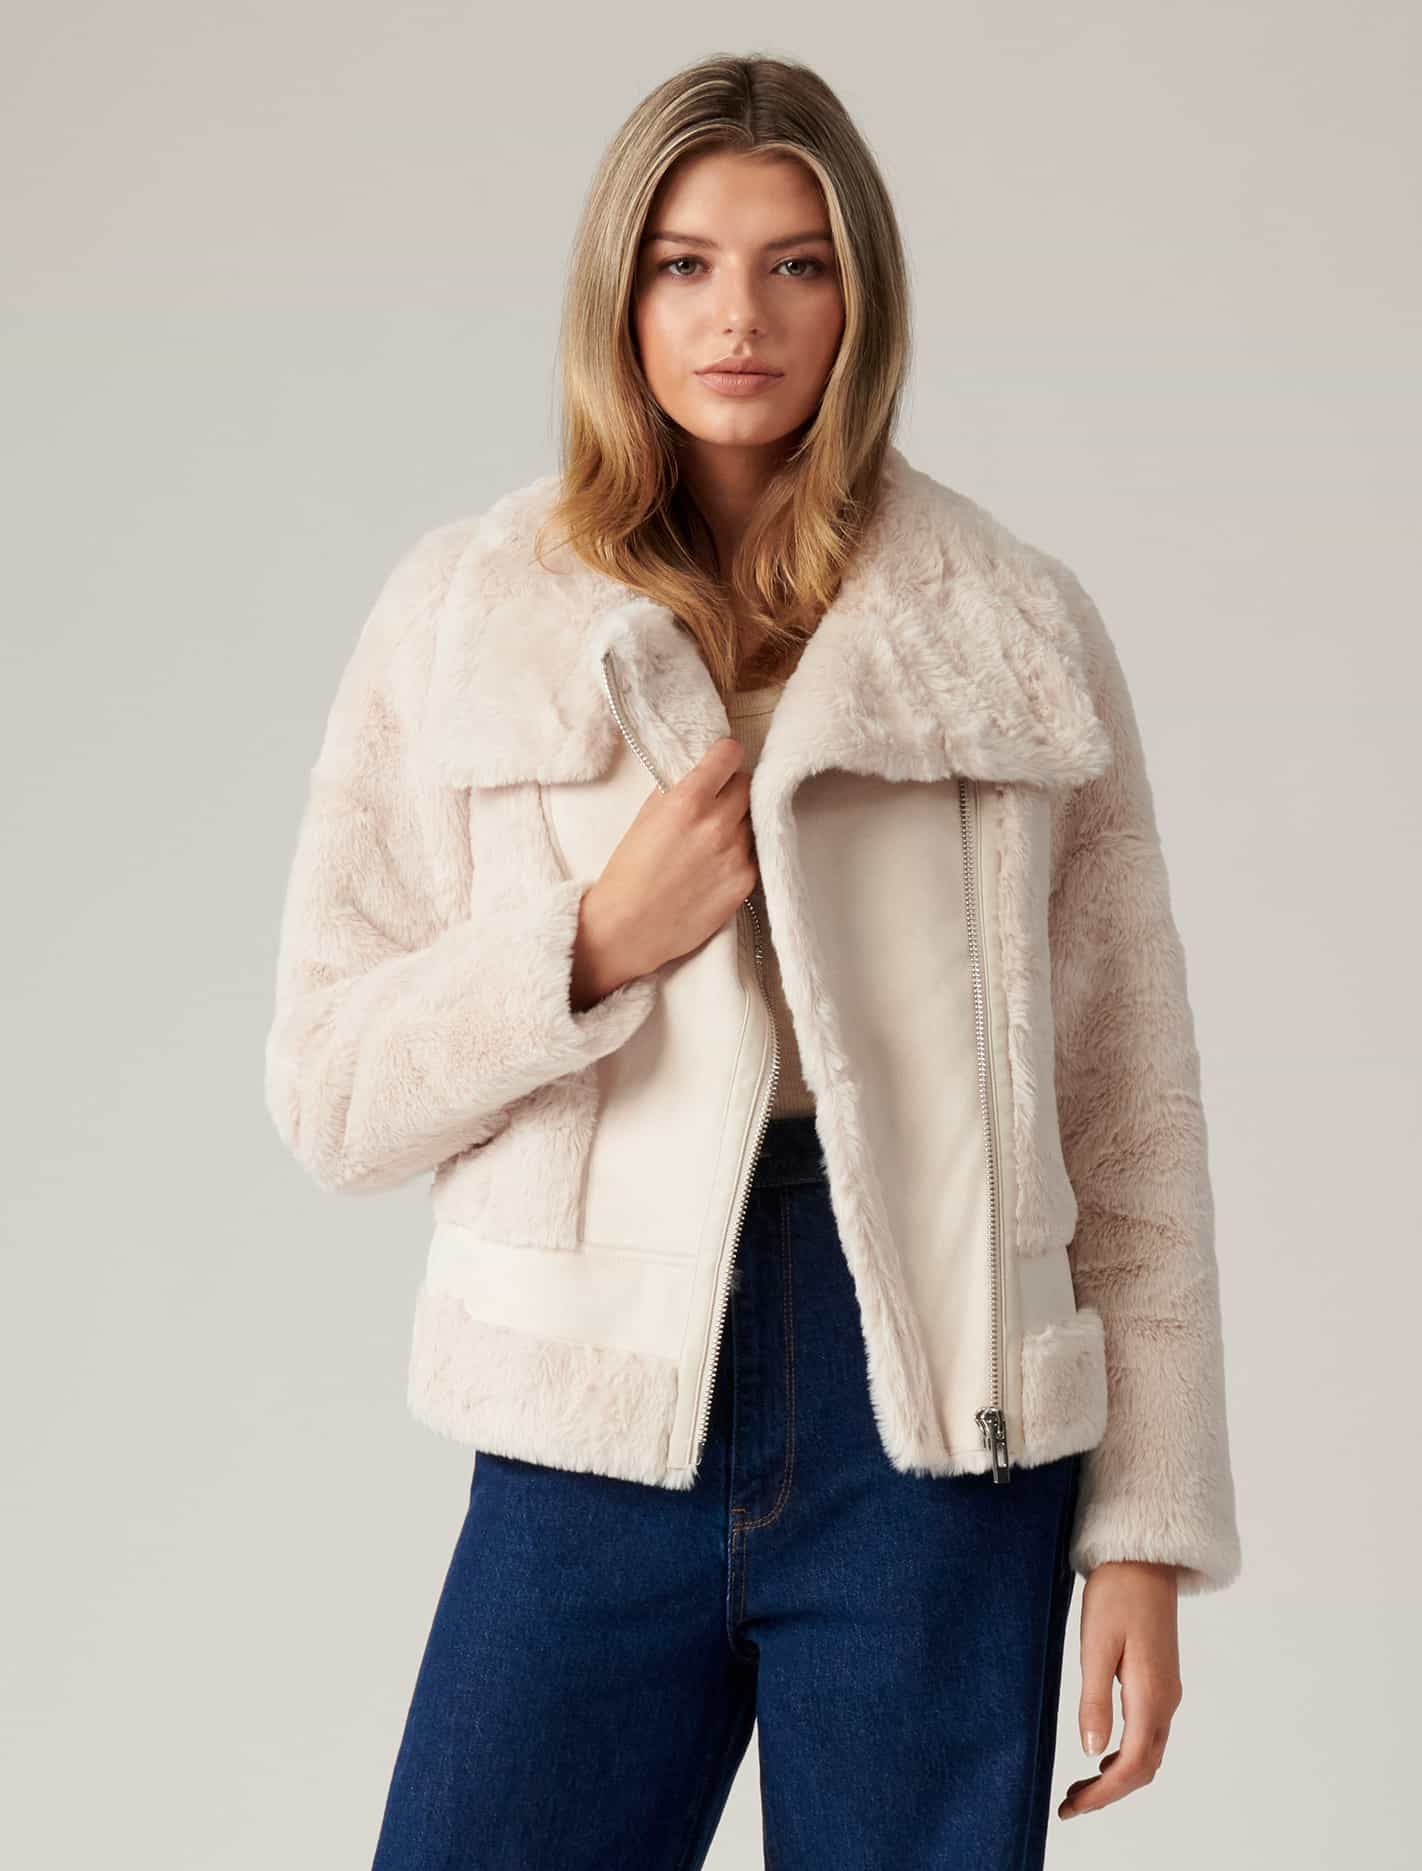 Ever New Dule Shearling Jacket - Cream